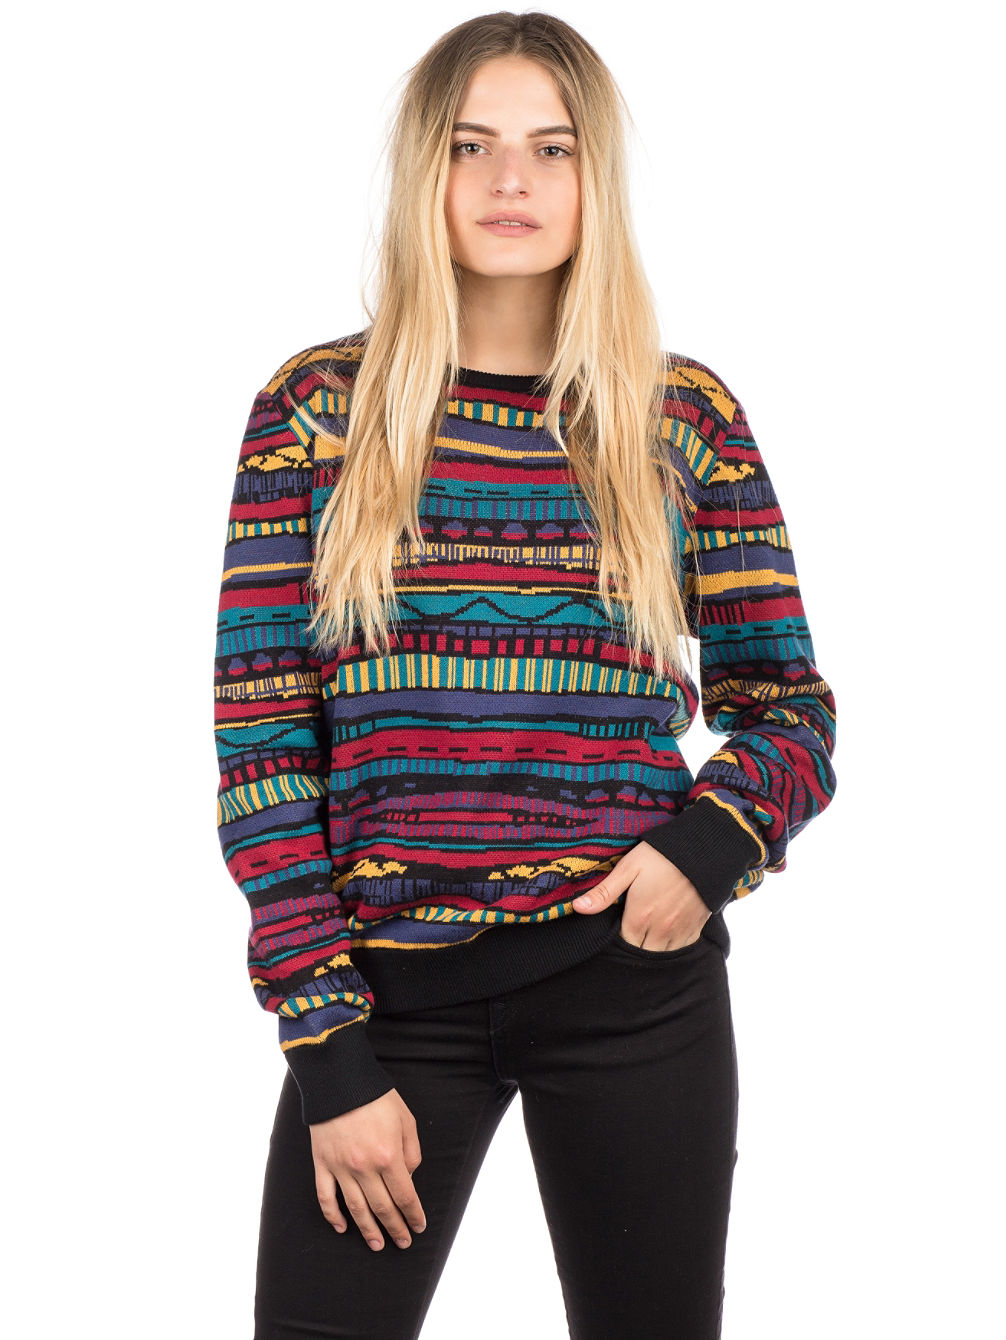 Rudy Knit Pullover. Iriedaily